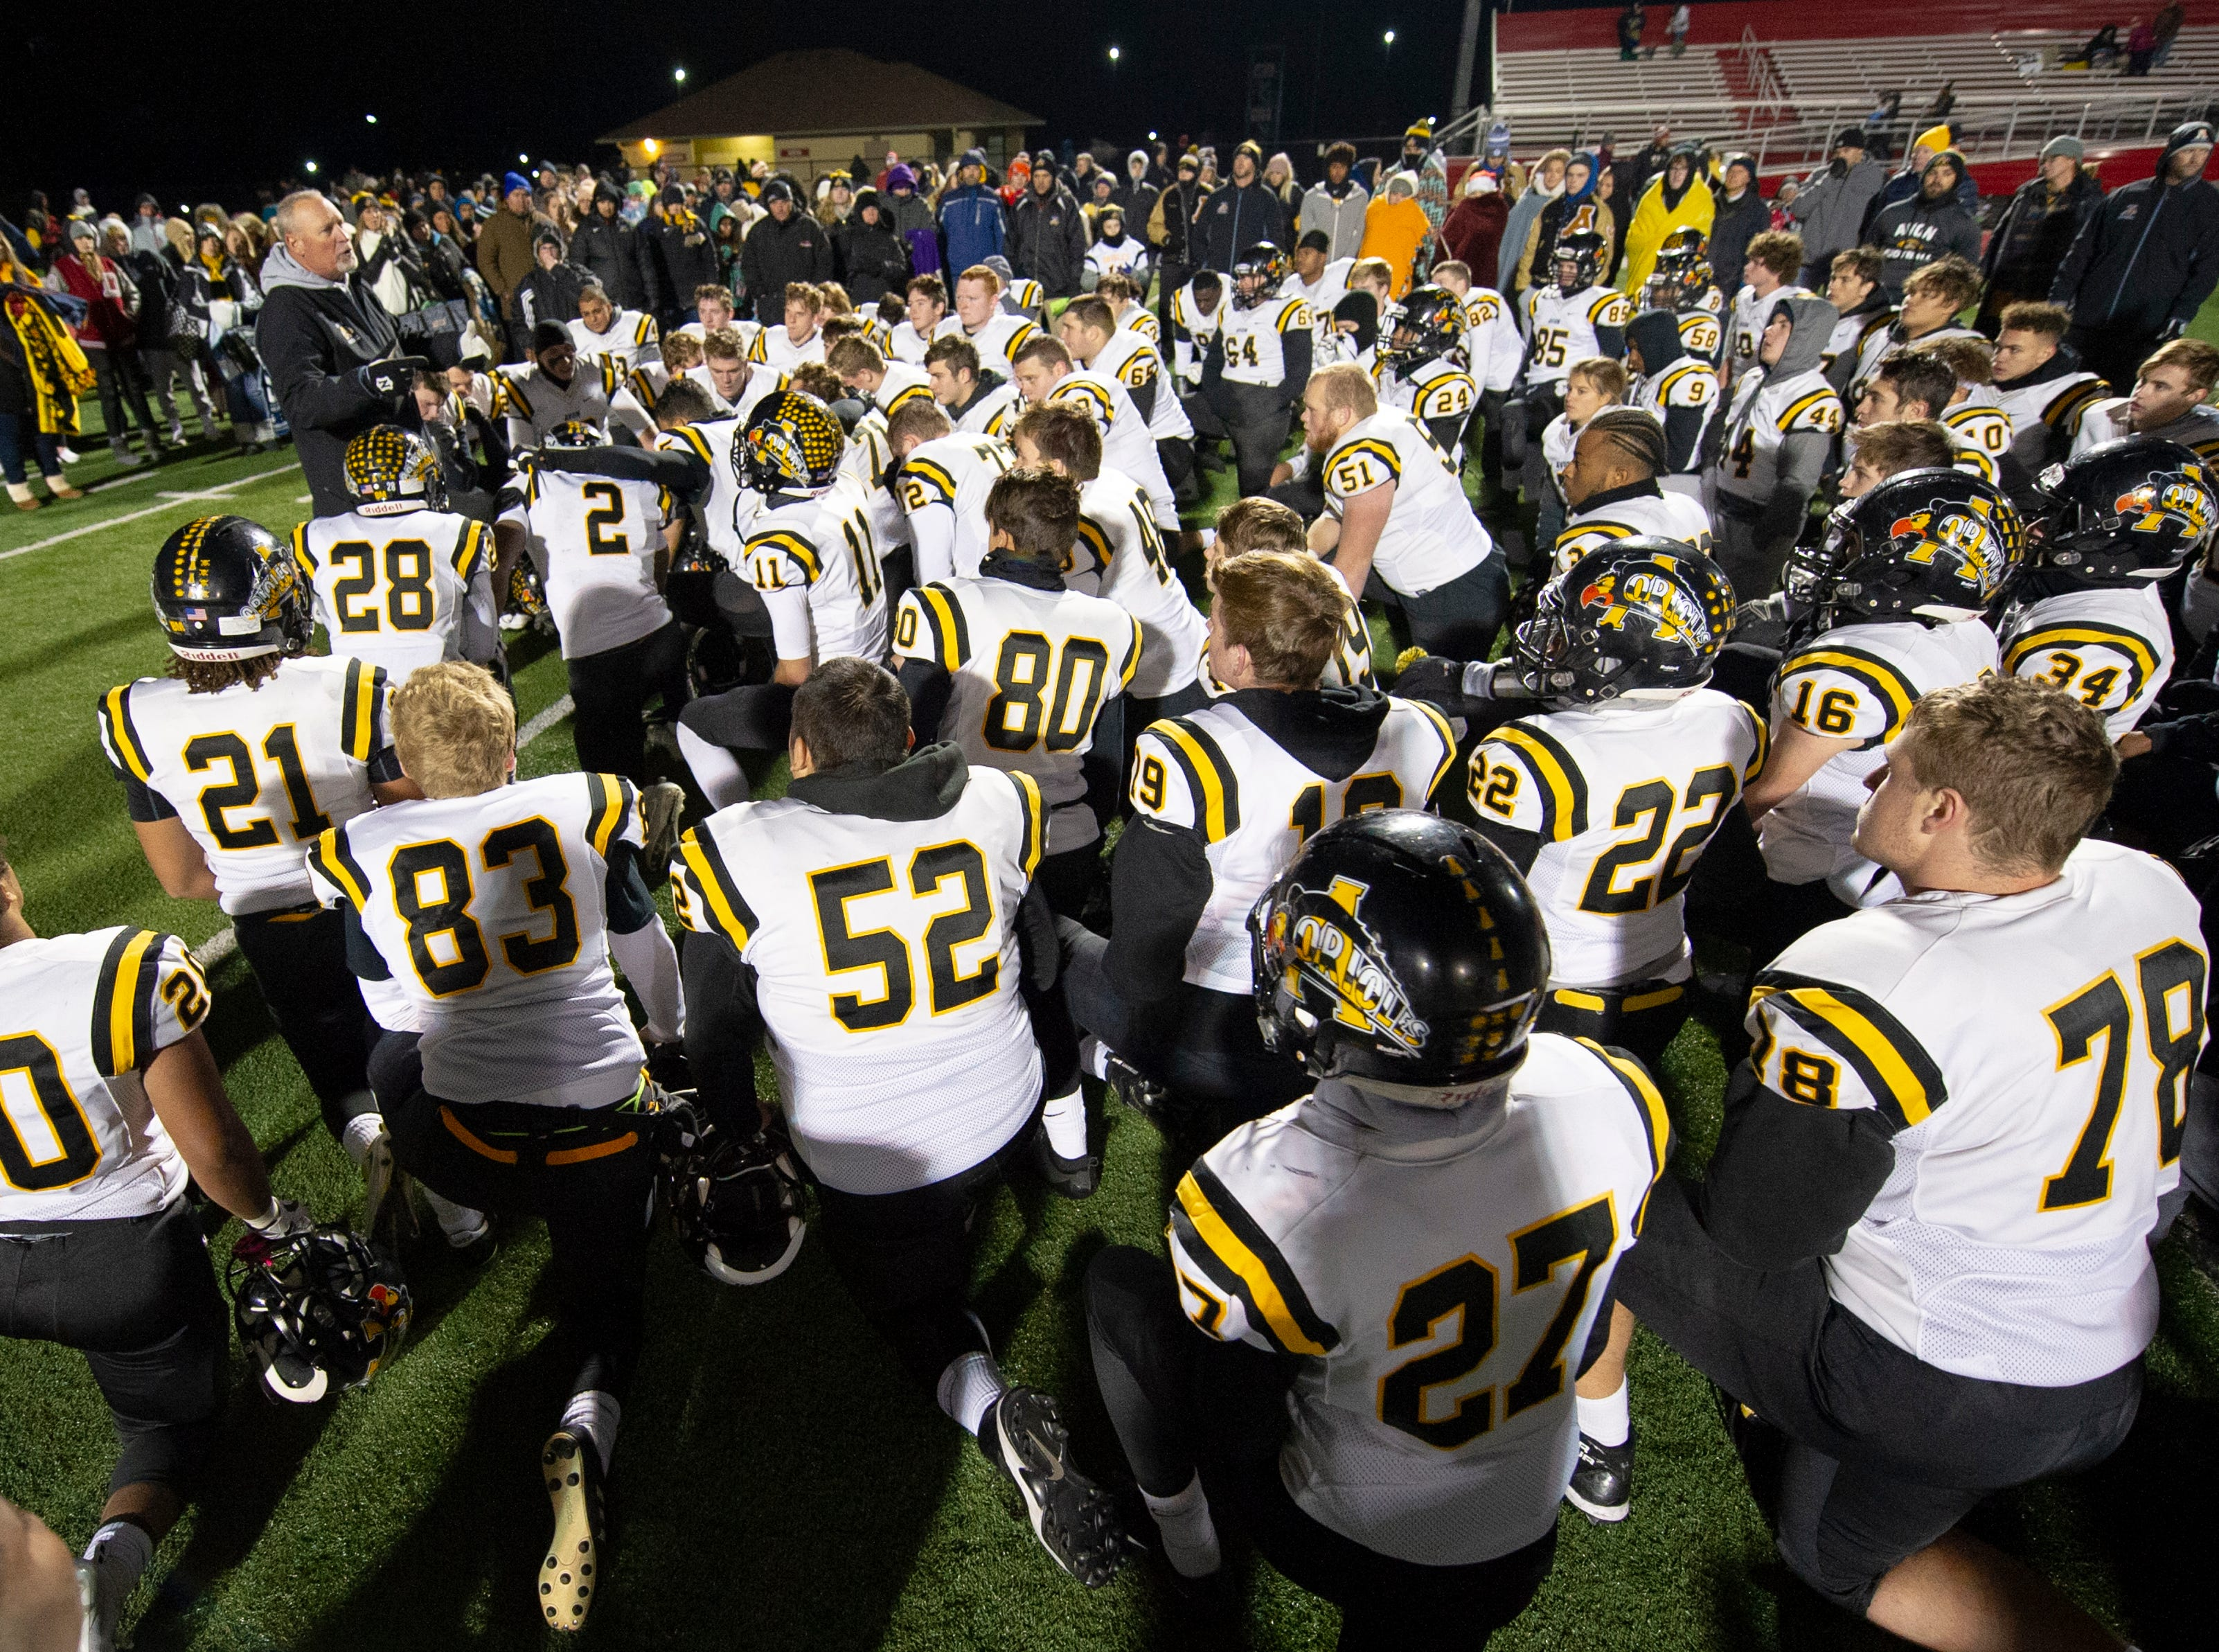 The Avon players listen as their coach, Mark Bless, gives them encouragement despite their loss. Center Grove High School hosted Avon High School in an IHSAA Class 6A Regional Championship varsity football game, Friday, Nov. 9, 2018. Center Grove won 17-0 to advance to semi-state.